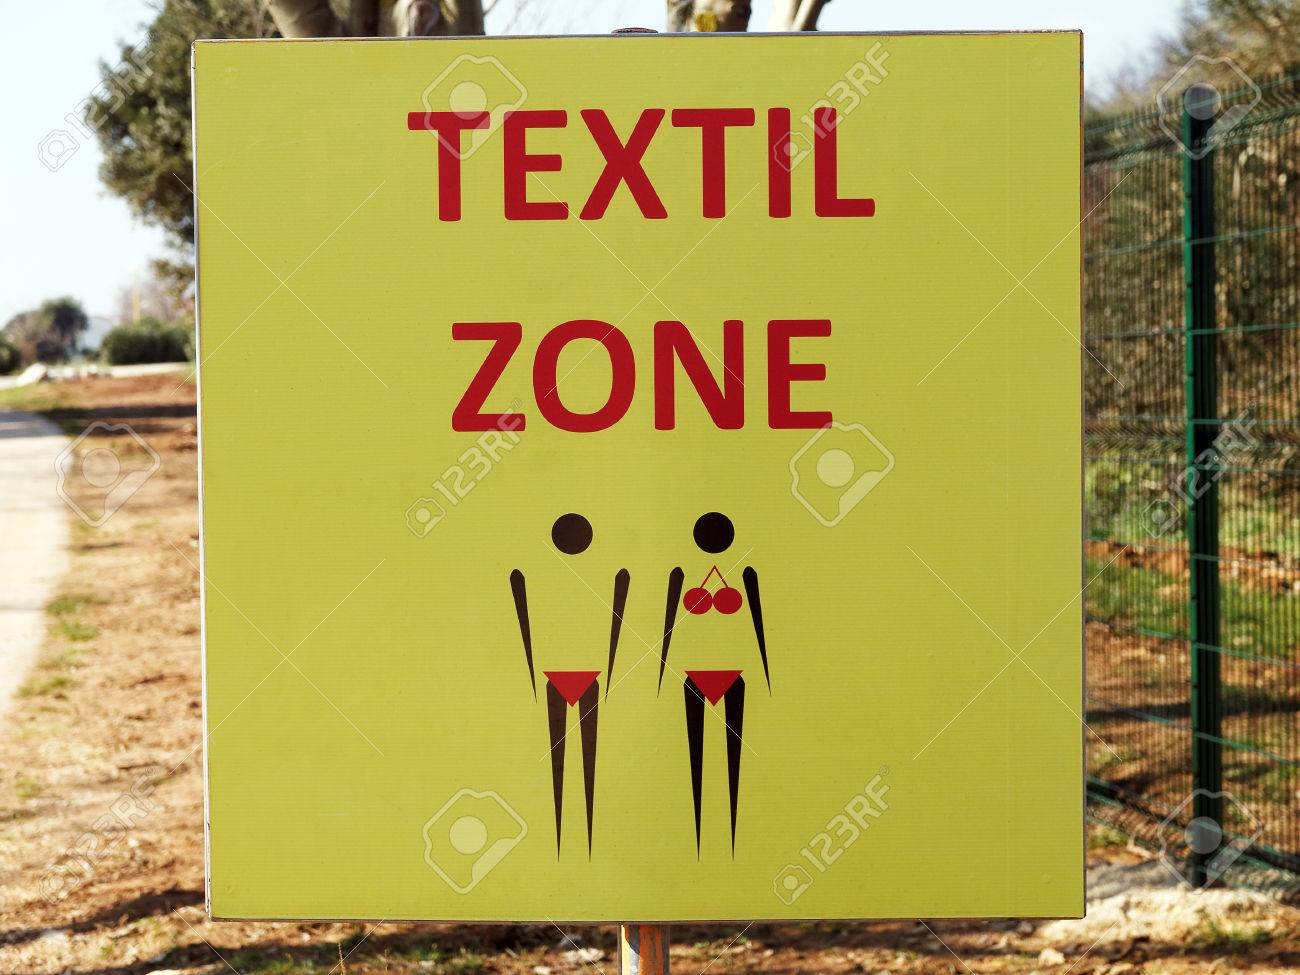 Nudist Zone textile zone - end of nude zone, Stock Photo - 37507930